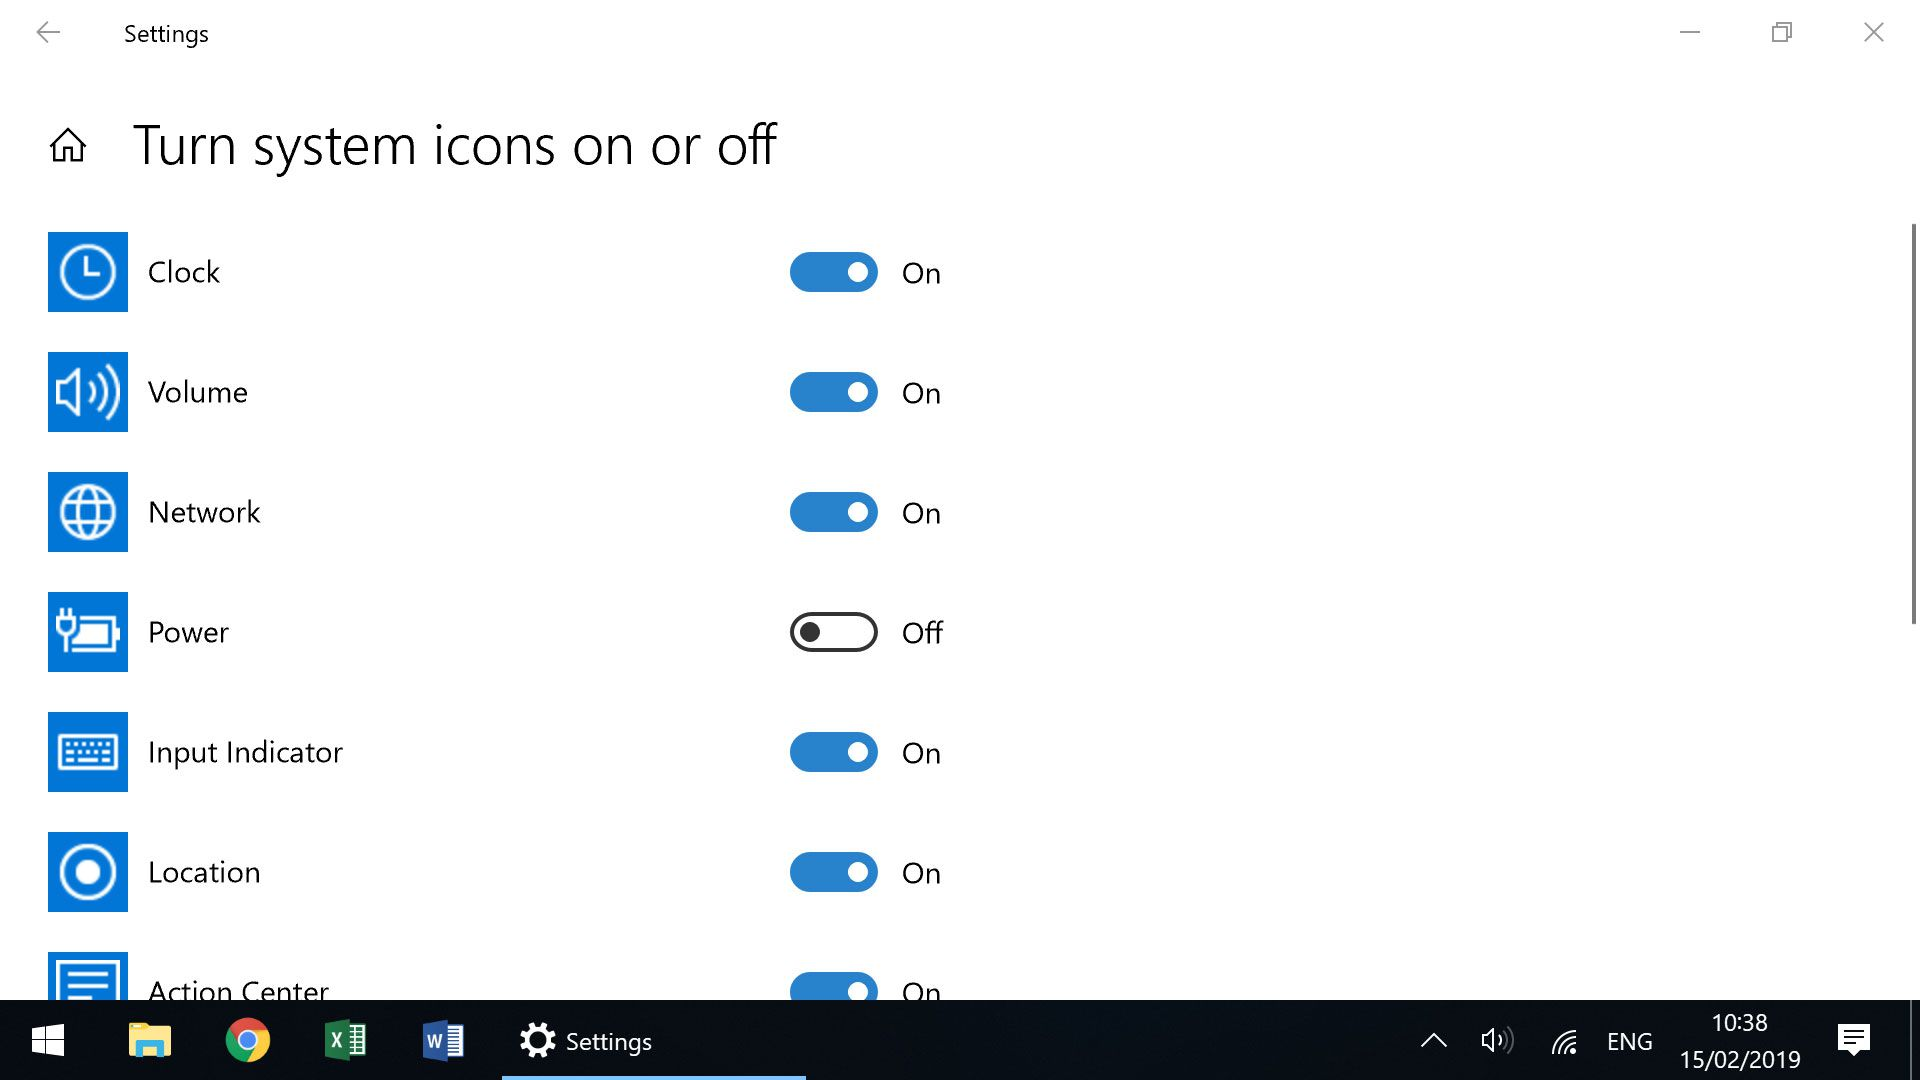 Turn system icons on or off - Windows Taskbar setting to display battery icon